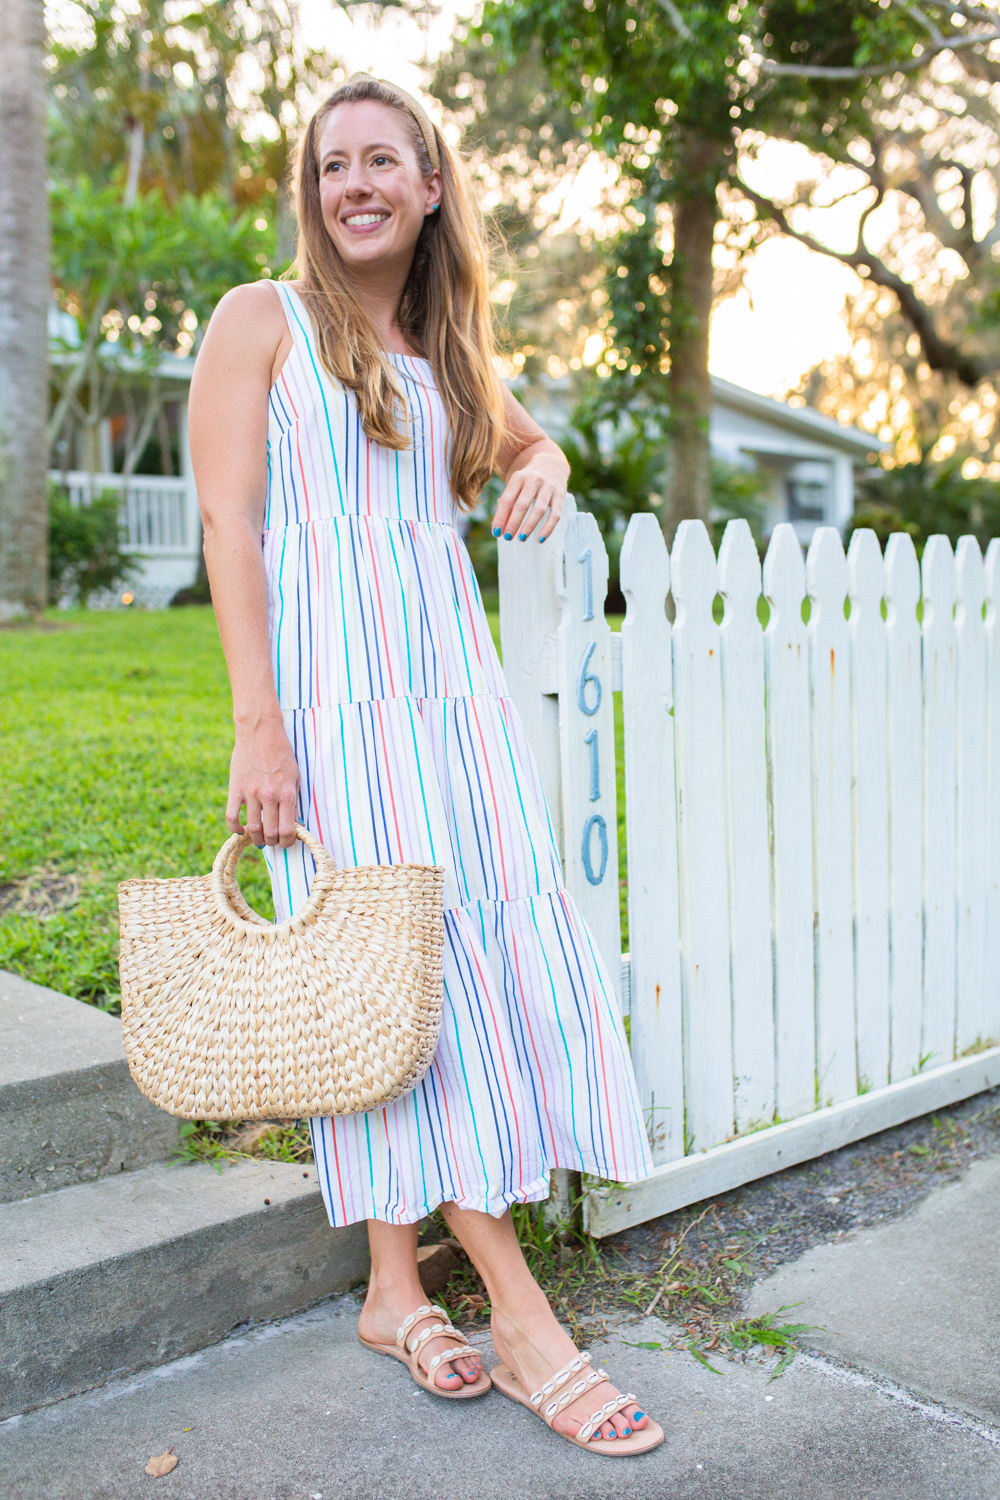 J.Crew Factory Striped Maxi Dress / How to Style a Maxi Dress in Warm-Weather / Summer Maxi Dress / Summer Dress Outfit / Preppy Outfit / Preppy Style Summer - Sunshine Style, A Florida Fashion and Lifestyle Blog